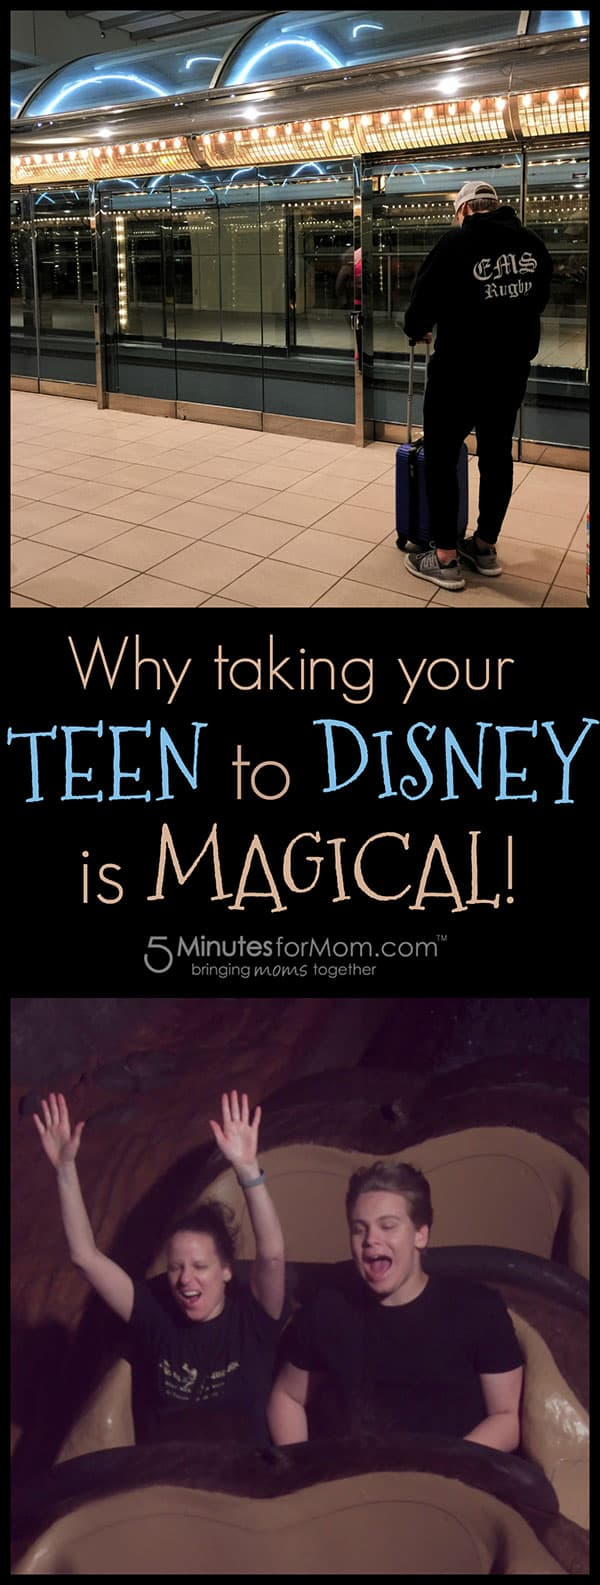 Why taking your teen to Disney is magical